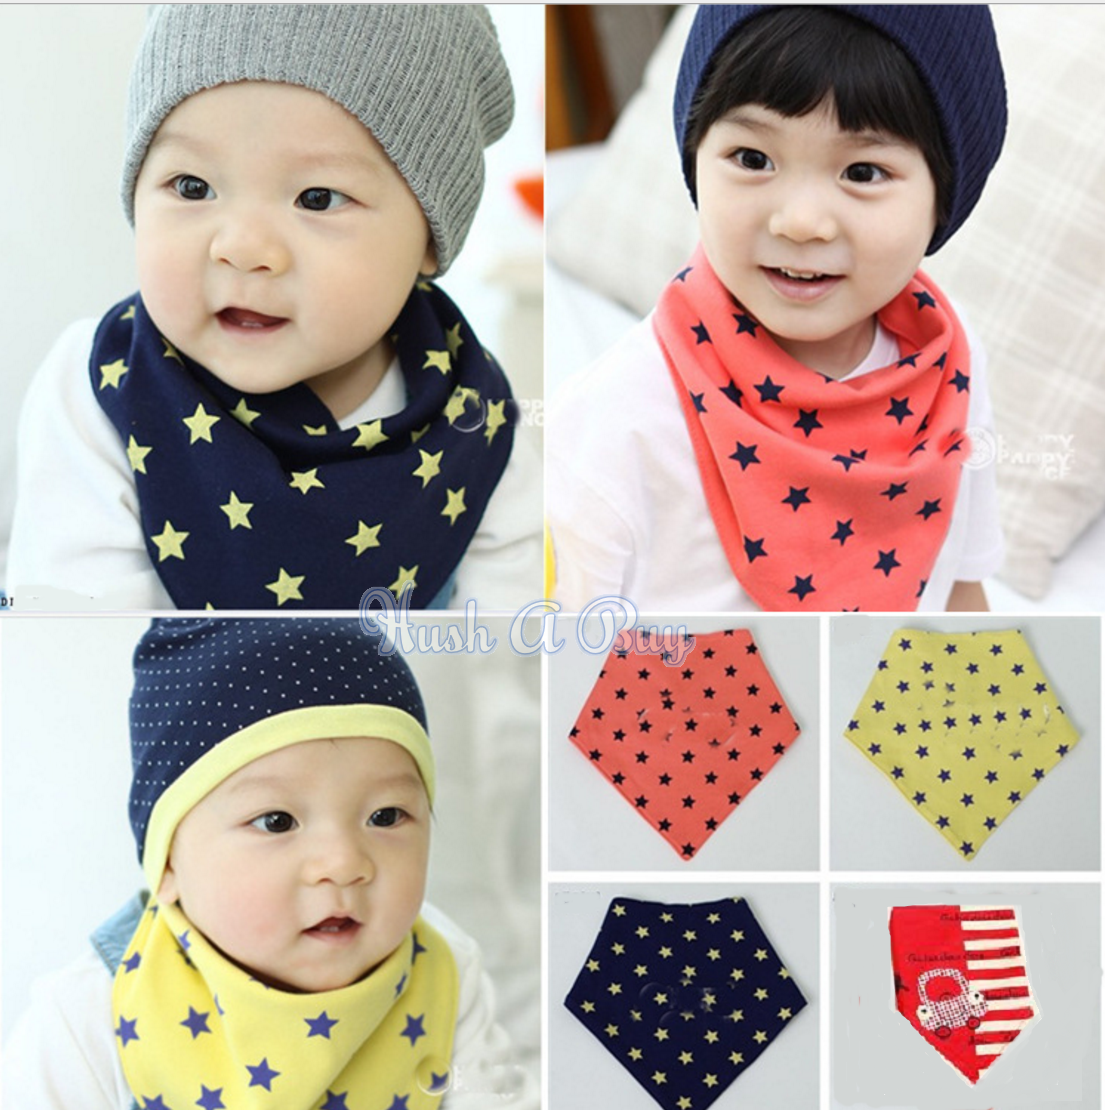 Korean Stylish Bib with Stars Design